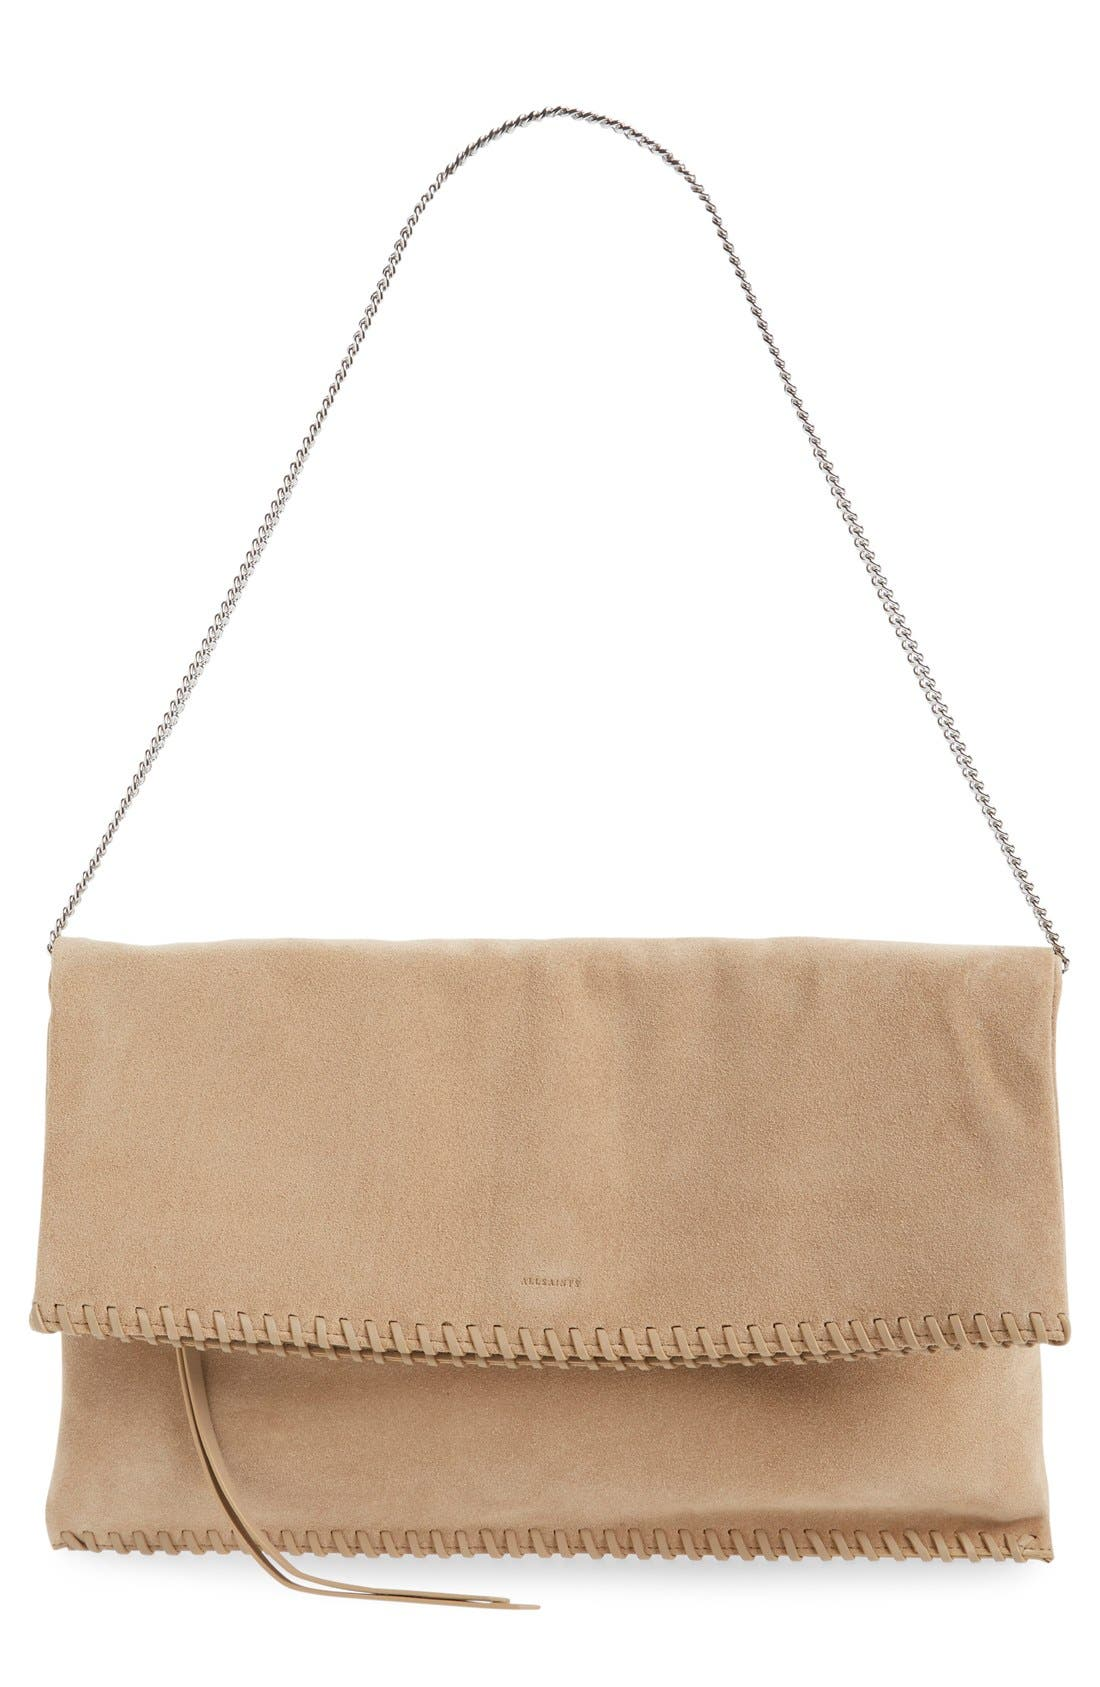 Alternate Image 1 Selected - ALLSAINTS 'Fleur de Lis' Suede Foldover Clutch